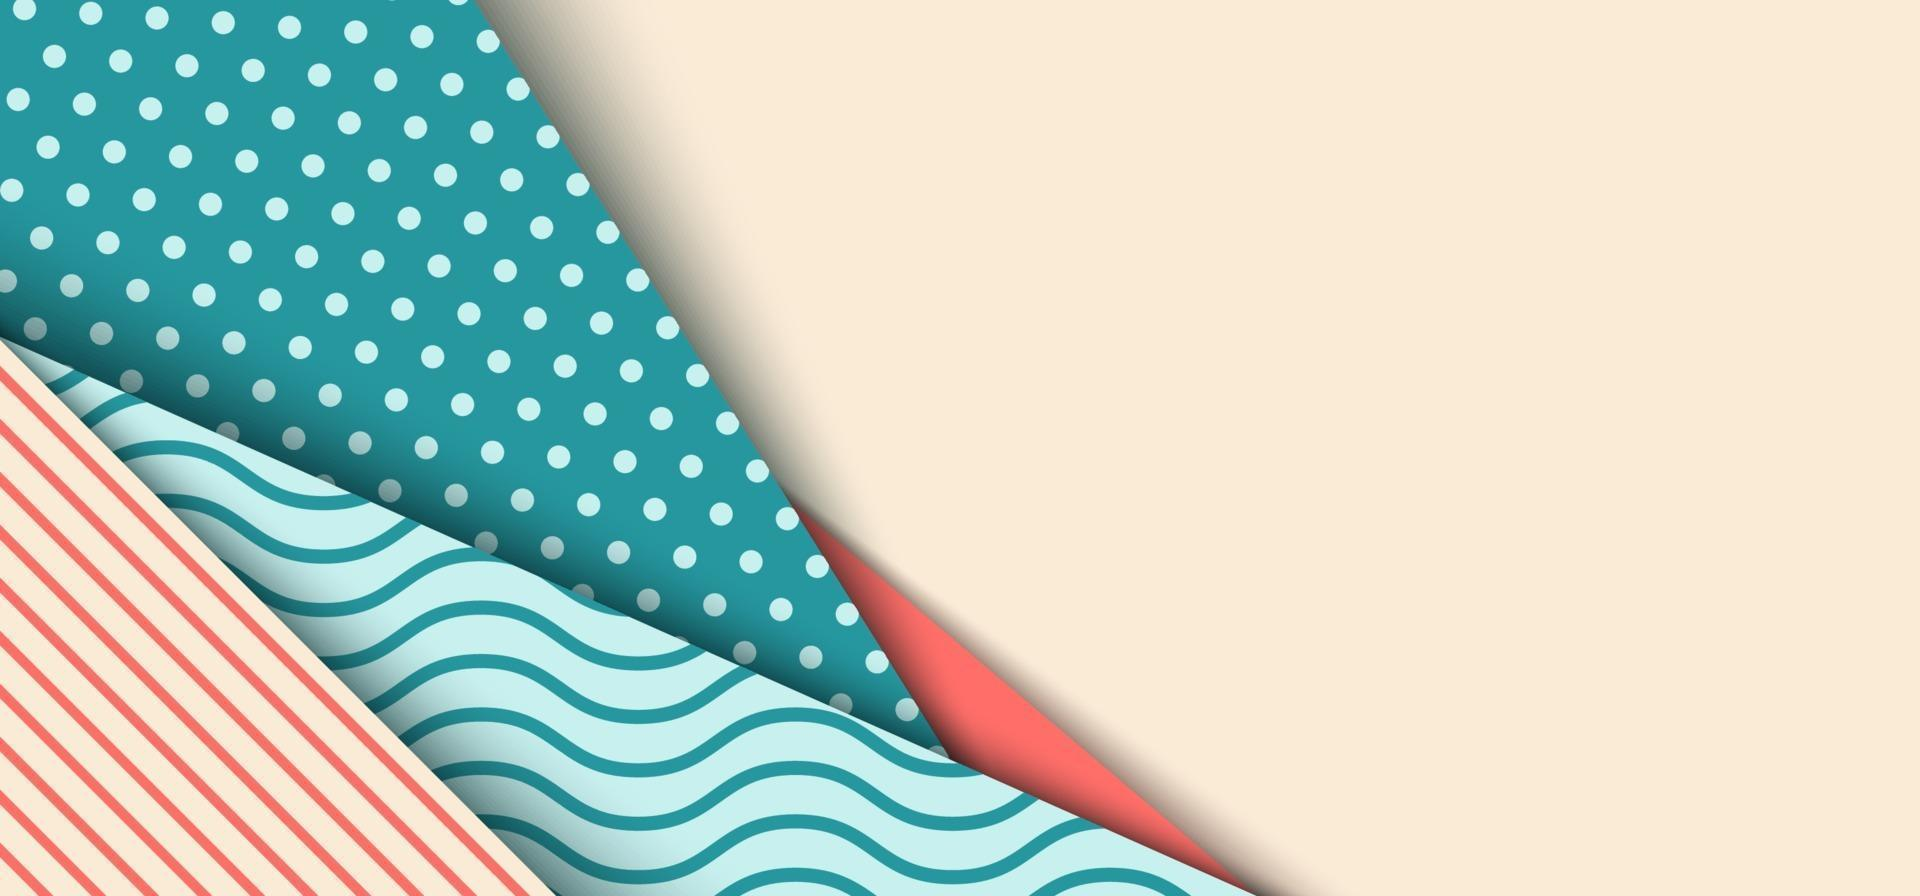 Banner web template background in pastel color with polka dot, wave, line cute pattern paper cut style vector